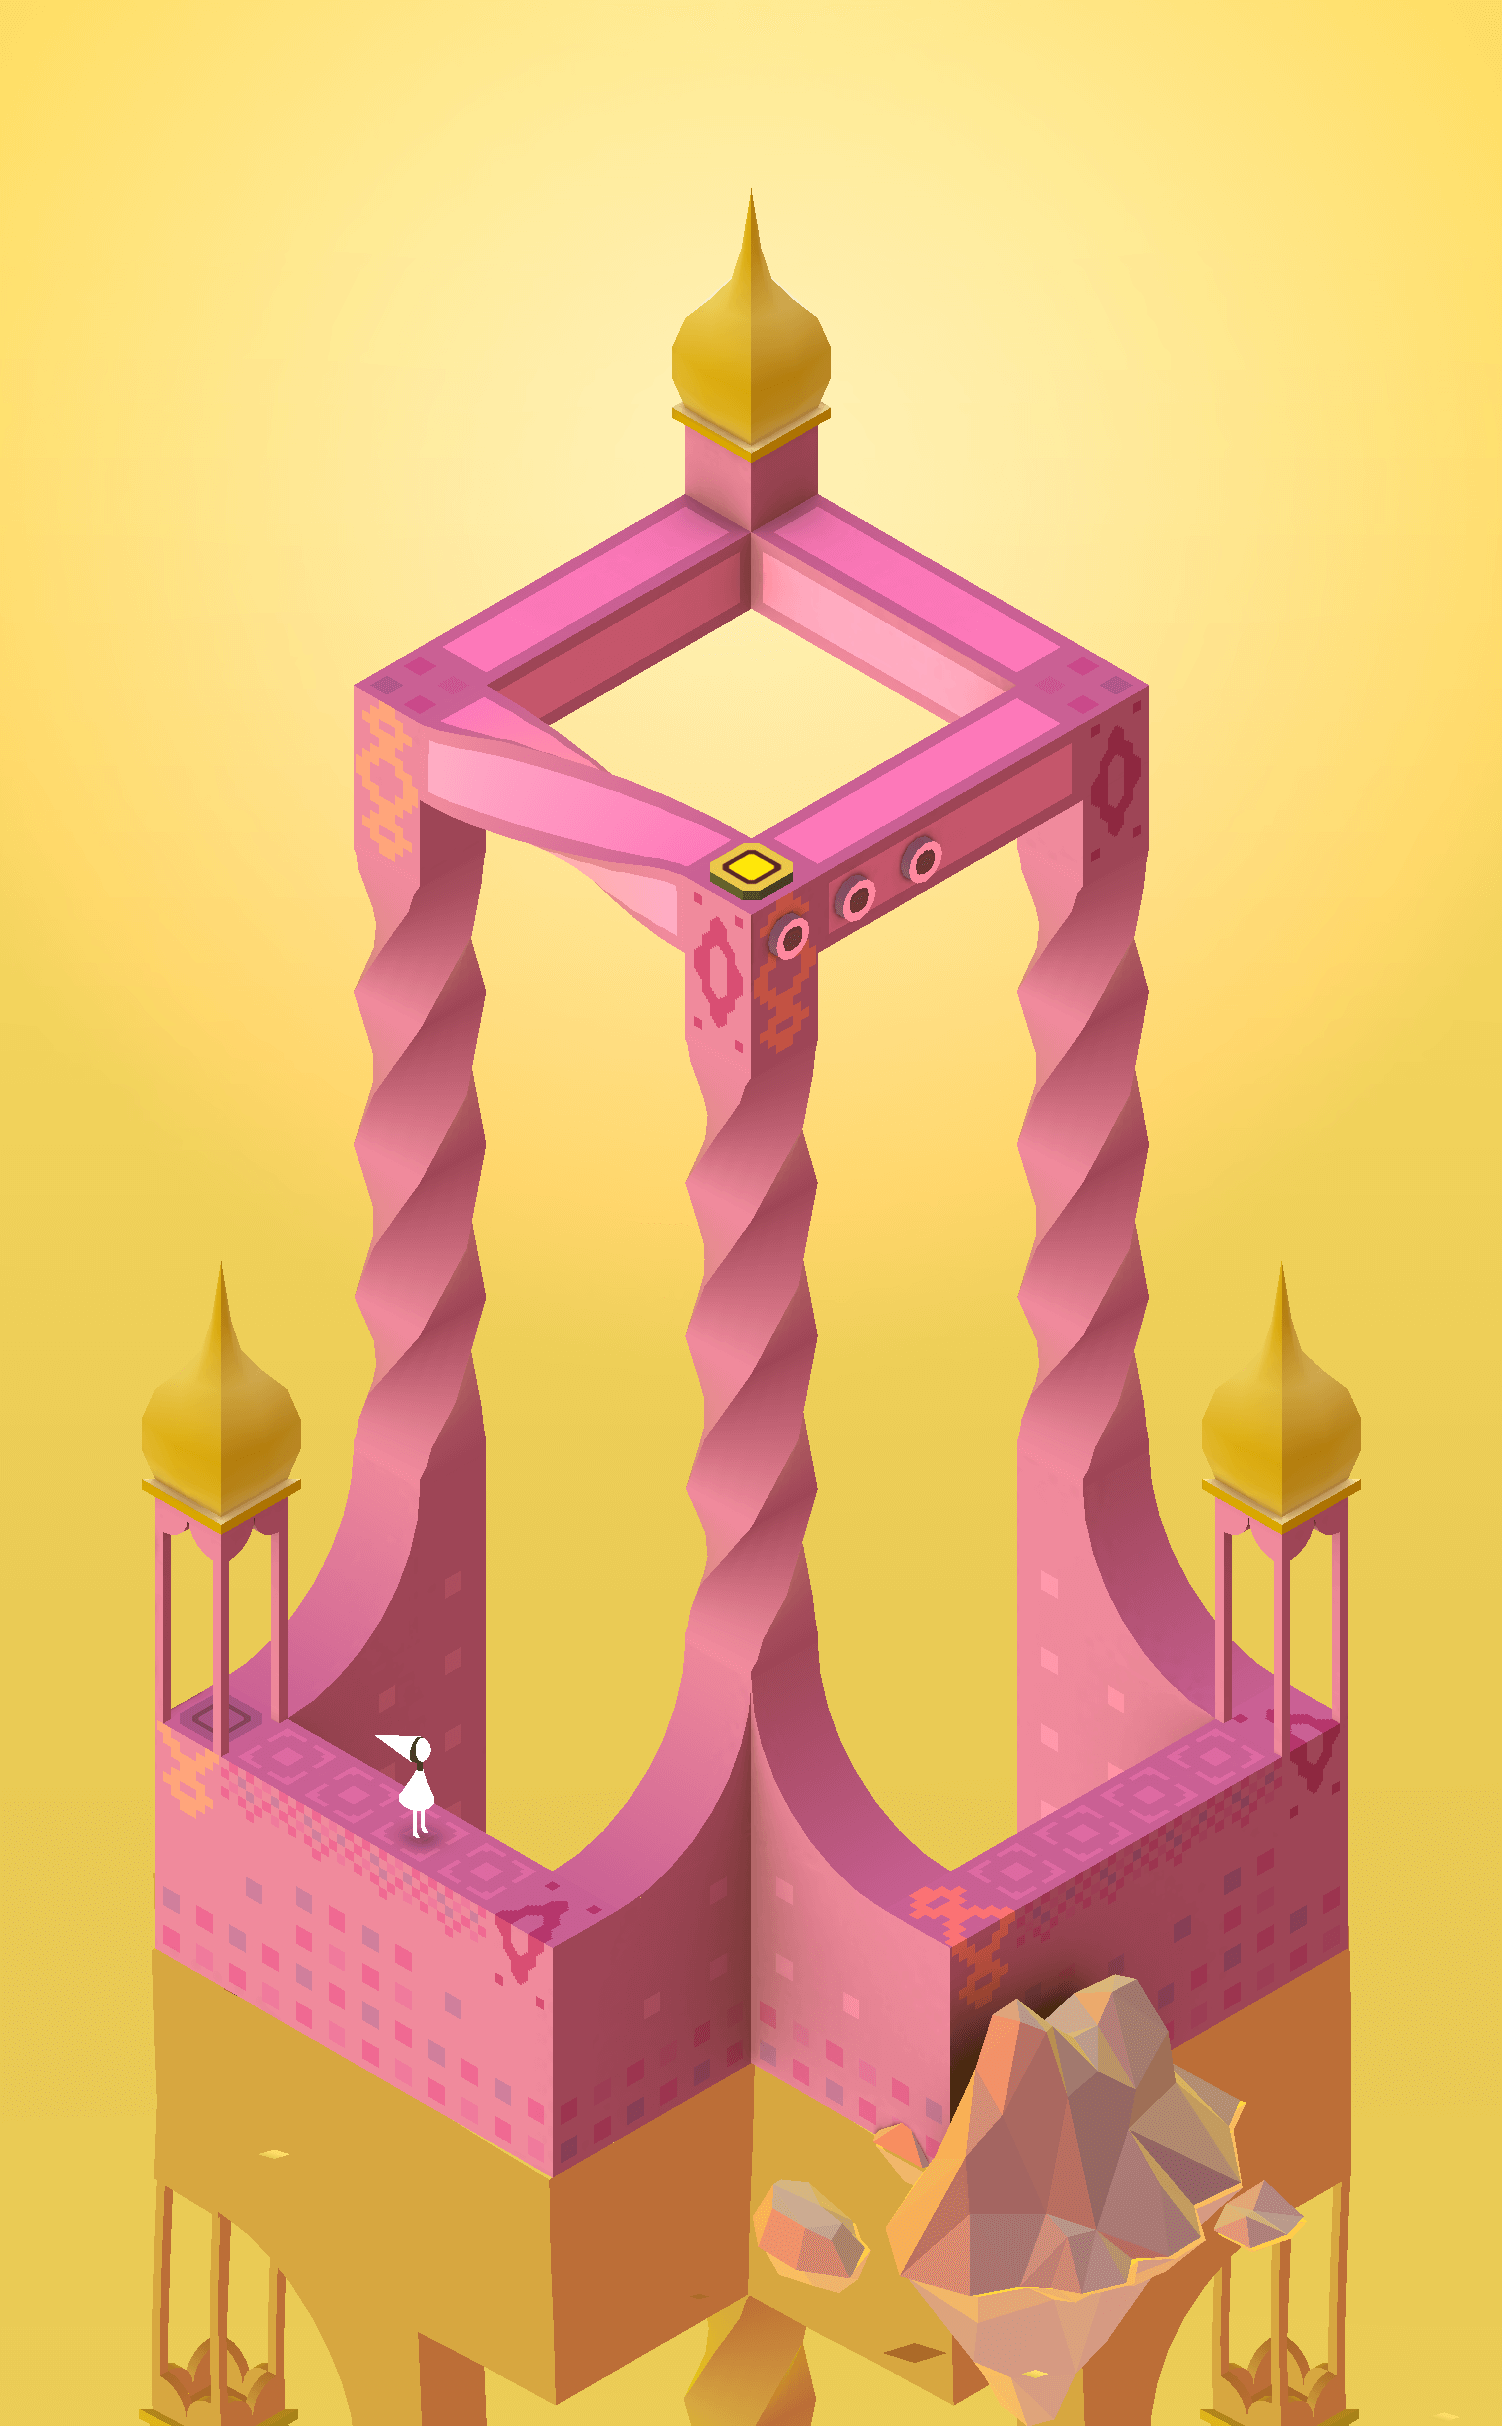 http://wayswework.io/assets/img/interviewphotos/MonumentValley1.png